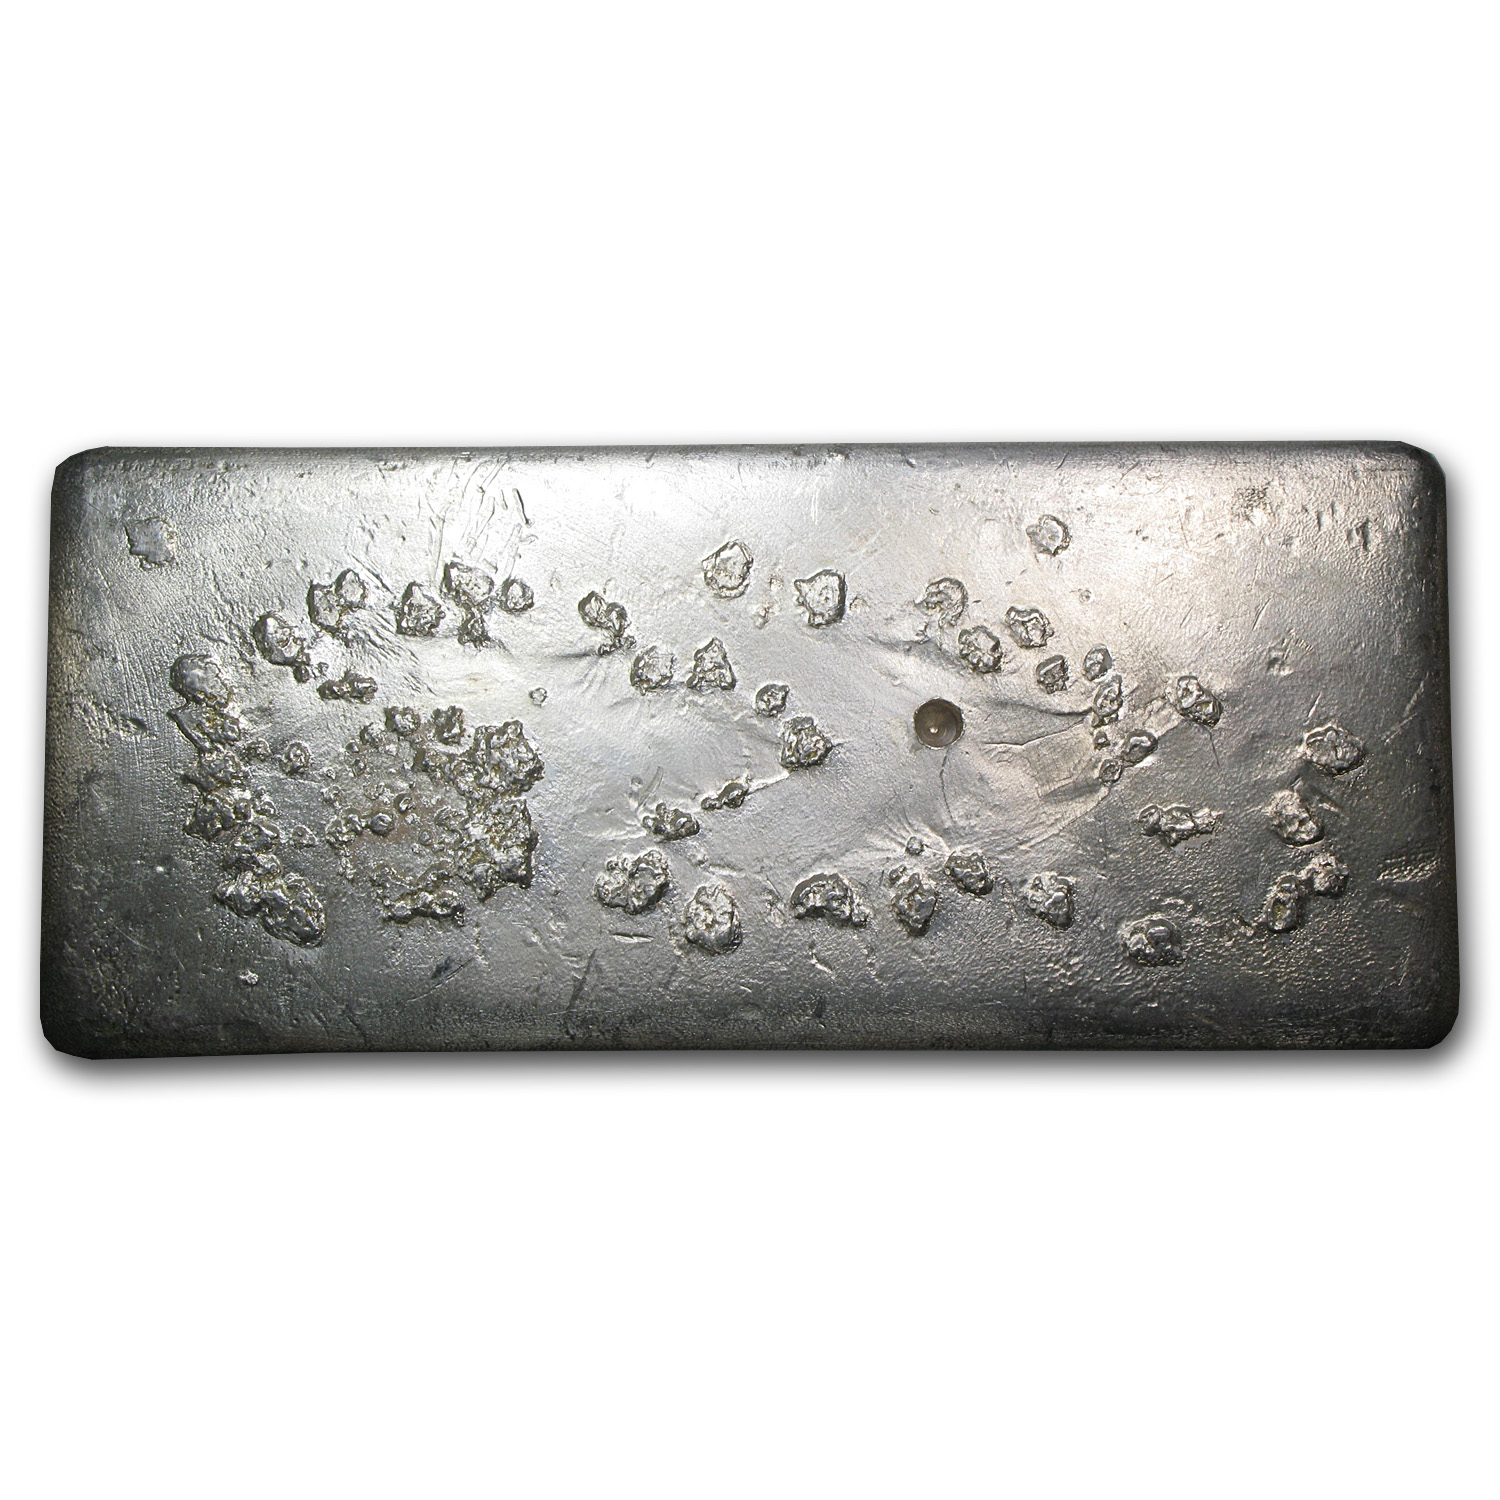 91.30 oz Silver Bars - New York Assay Office (1980)